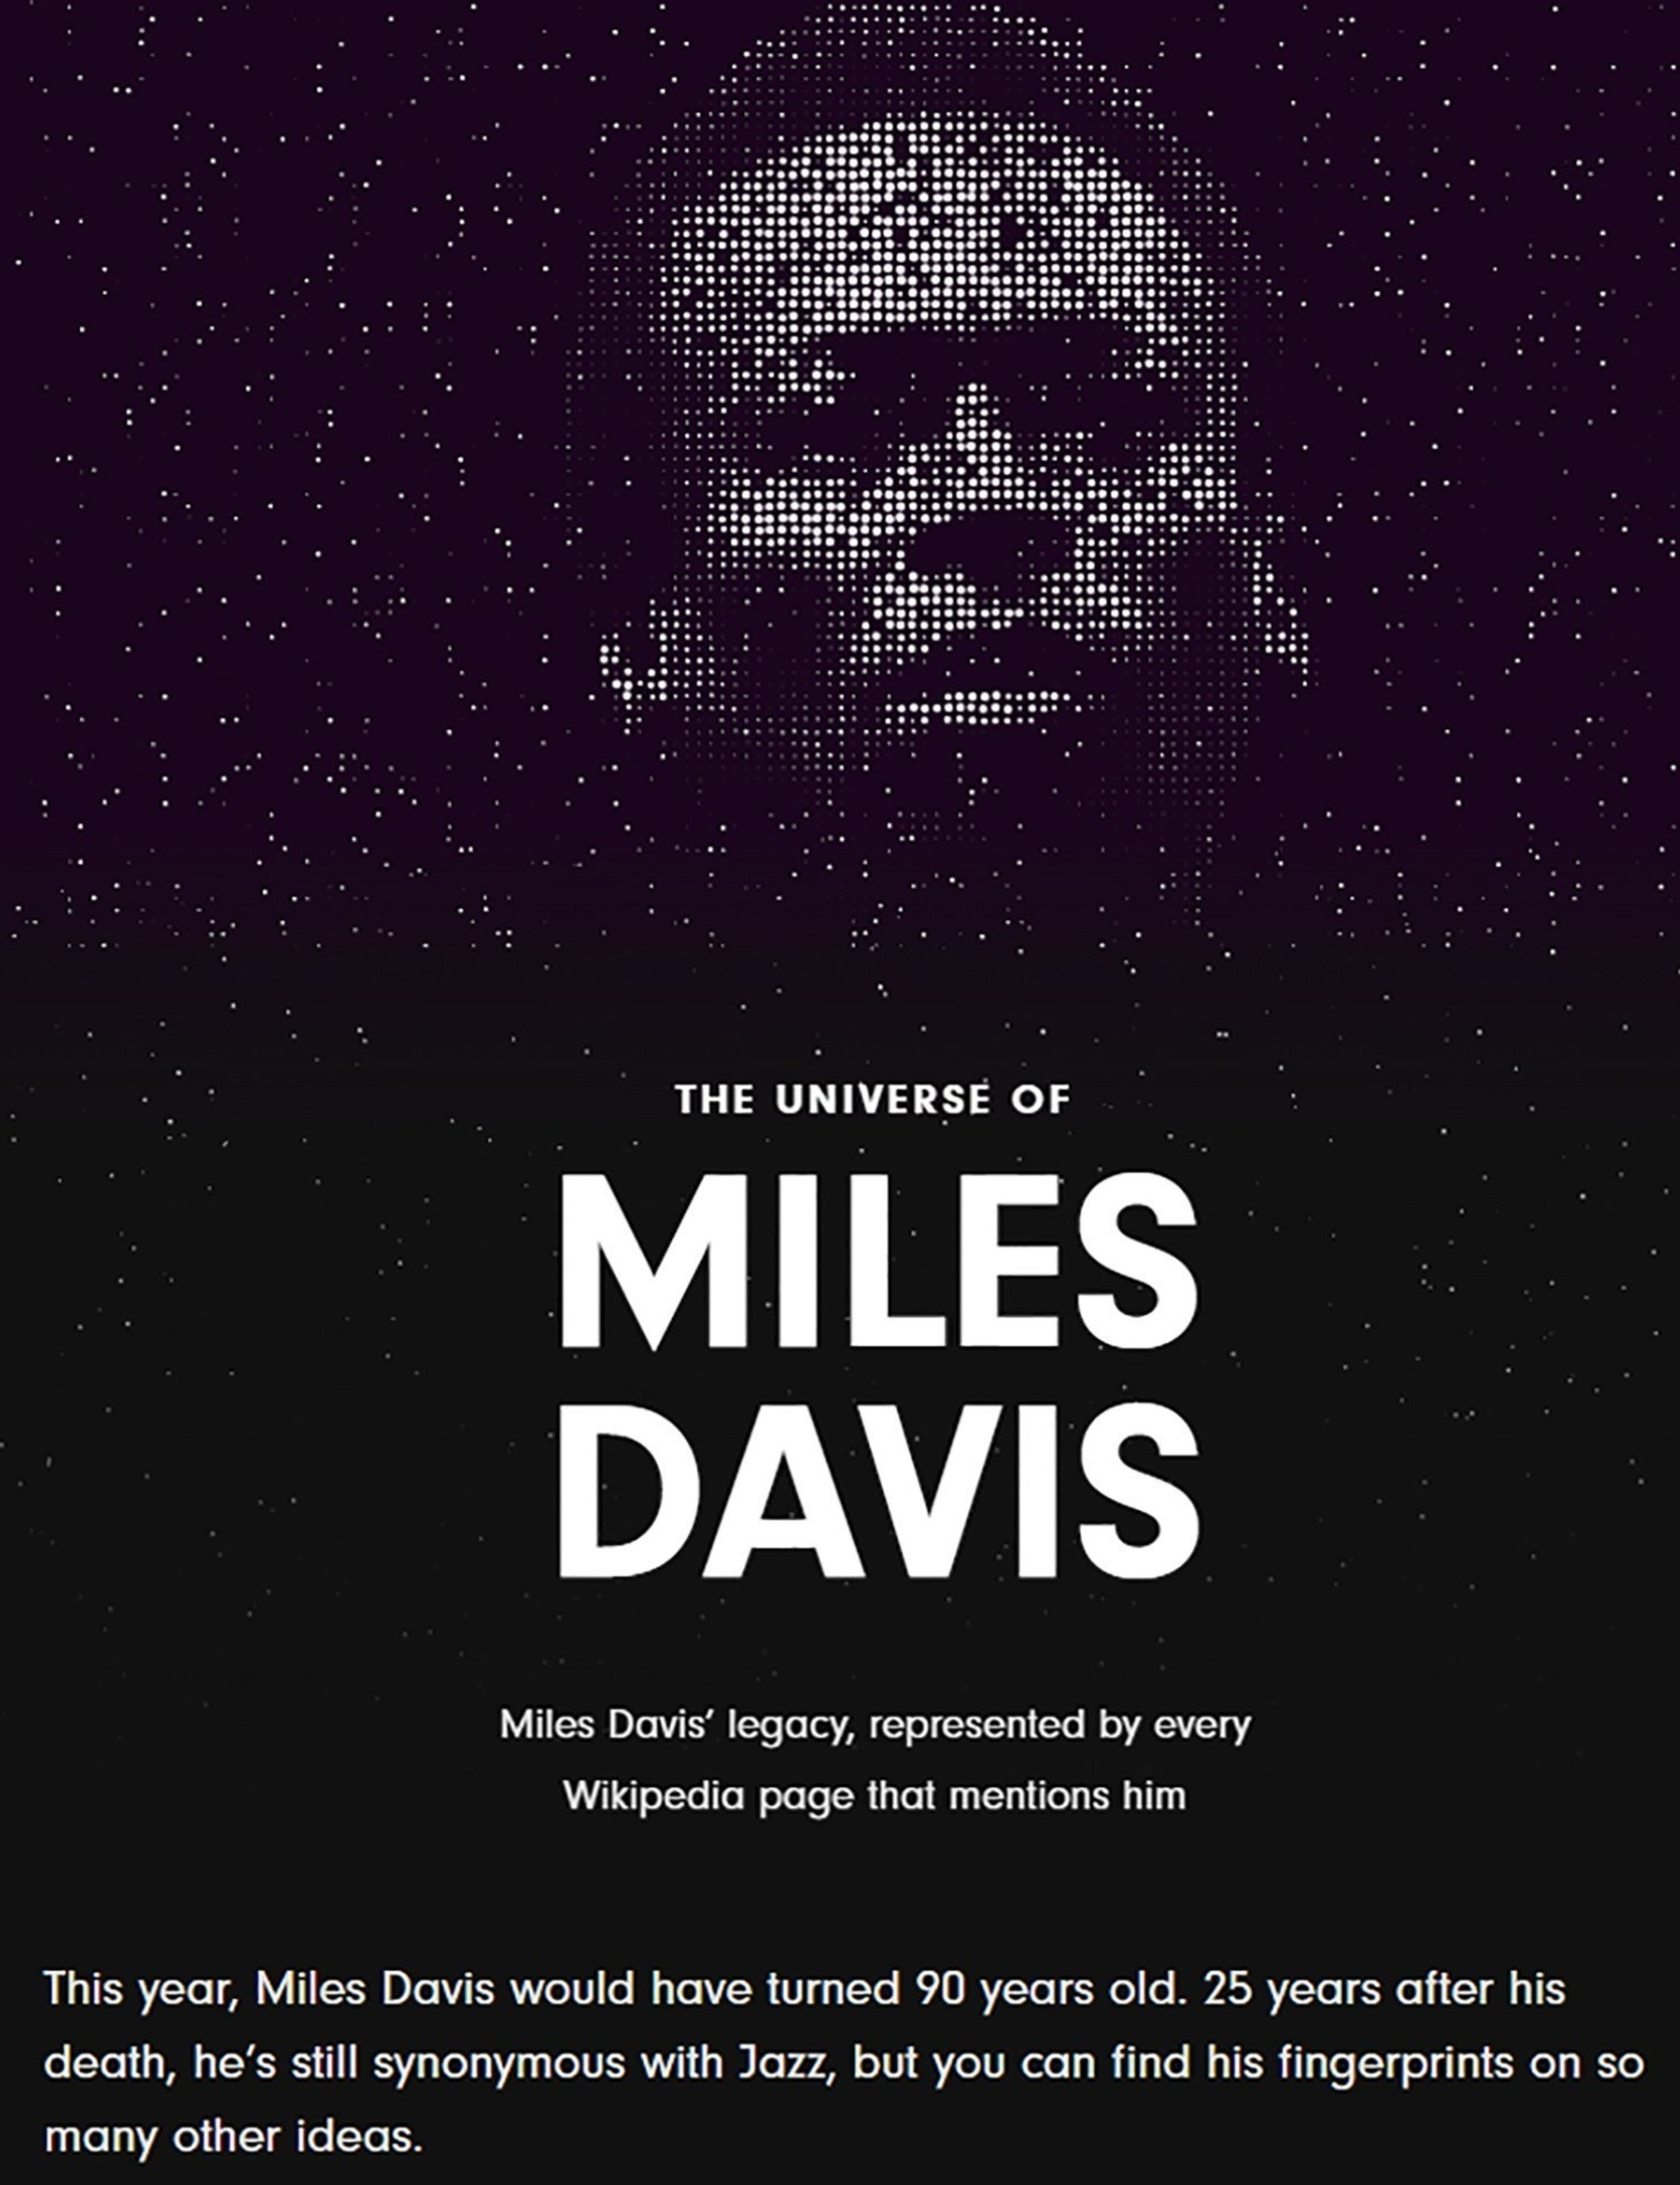 Miles Davis: The Universe of Cool. Visualized.